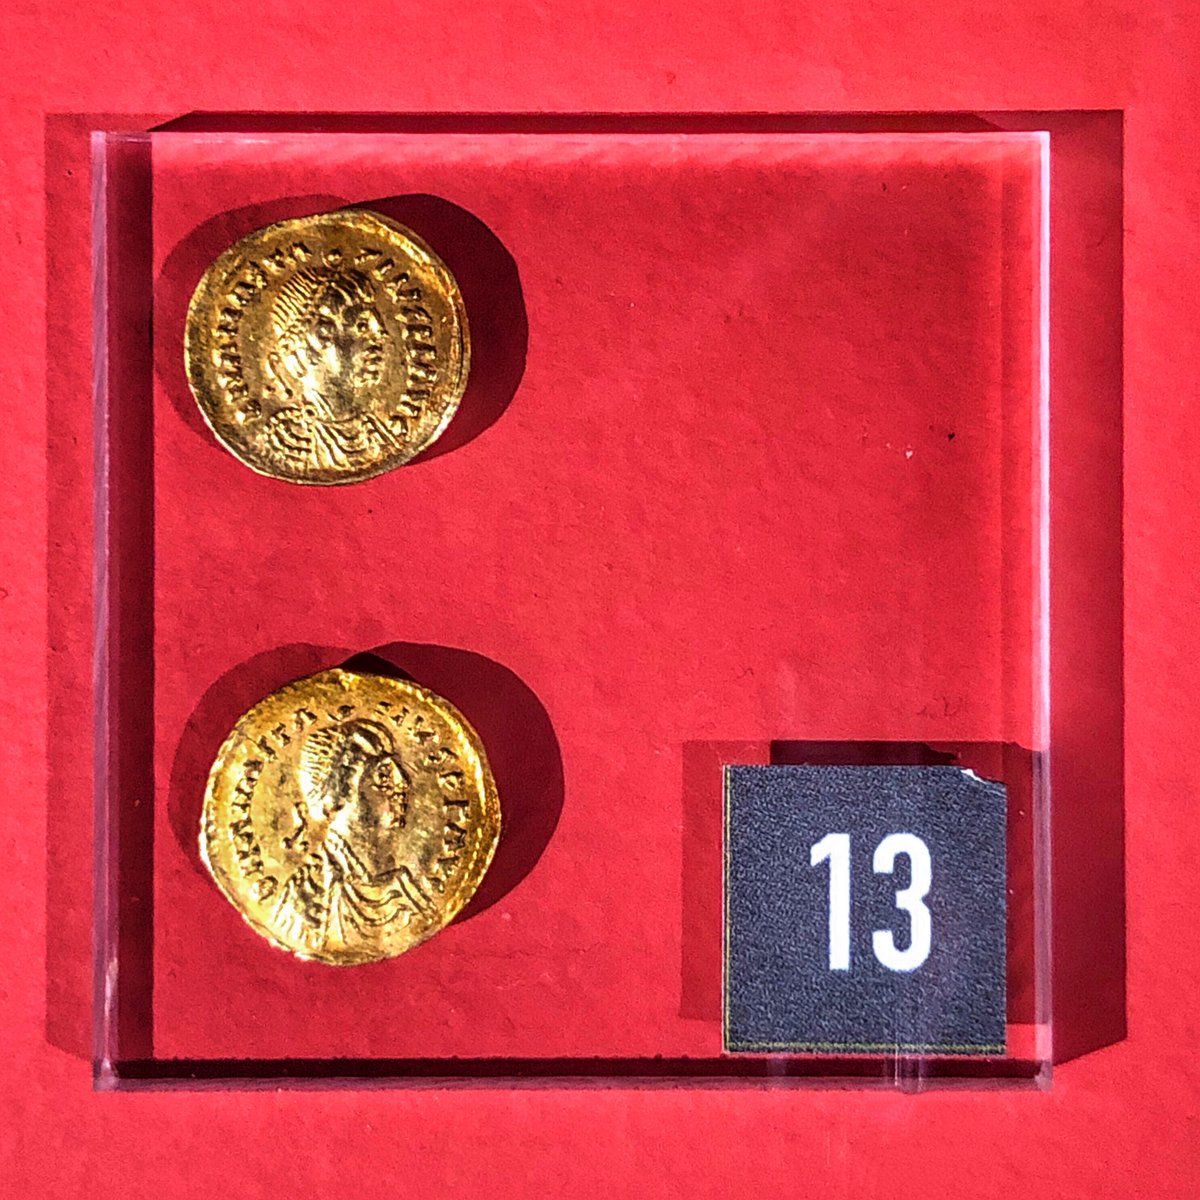 Two Ostrogothic tremissis (solid gold coins) of king Baduila from the Ostrogoth region (Northern ltaly, 541-552, gold, KBR = Royal Library of Belgium).  #AHMBrussels #Crossroads https://t.co/jgpyqbgKsE